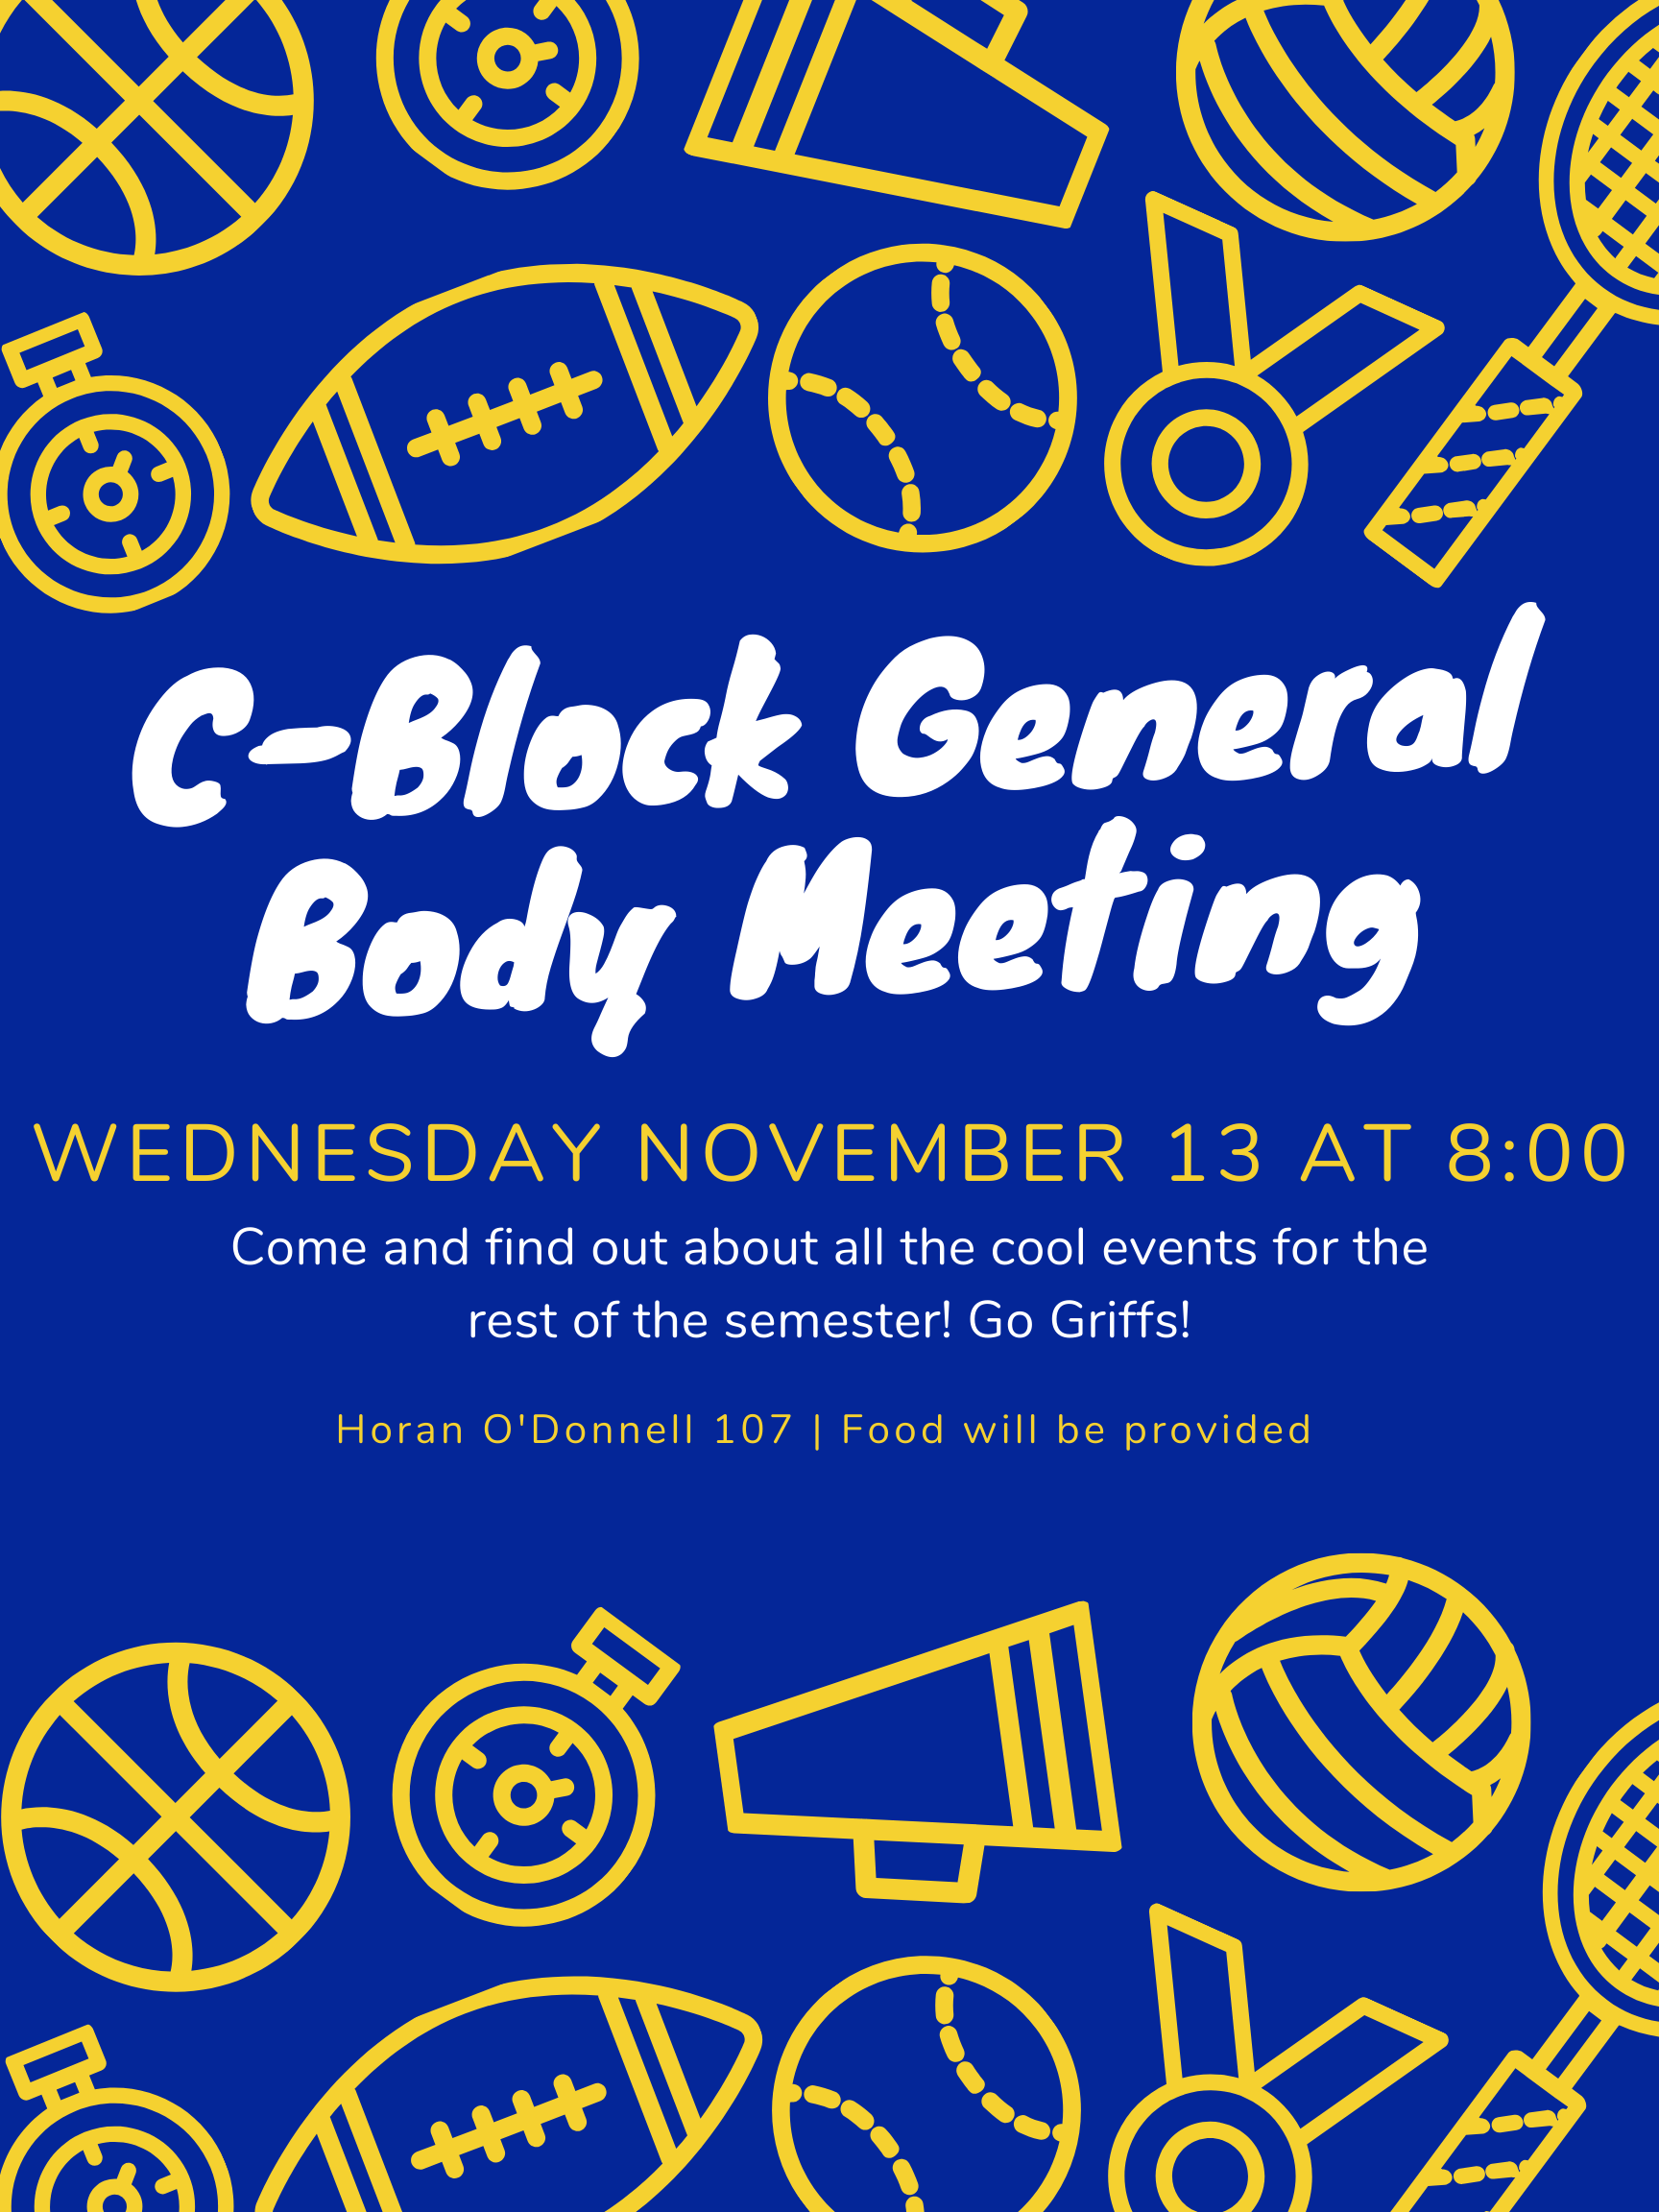 C-Block General Body Meeting.png